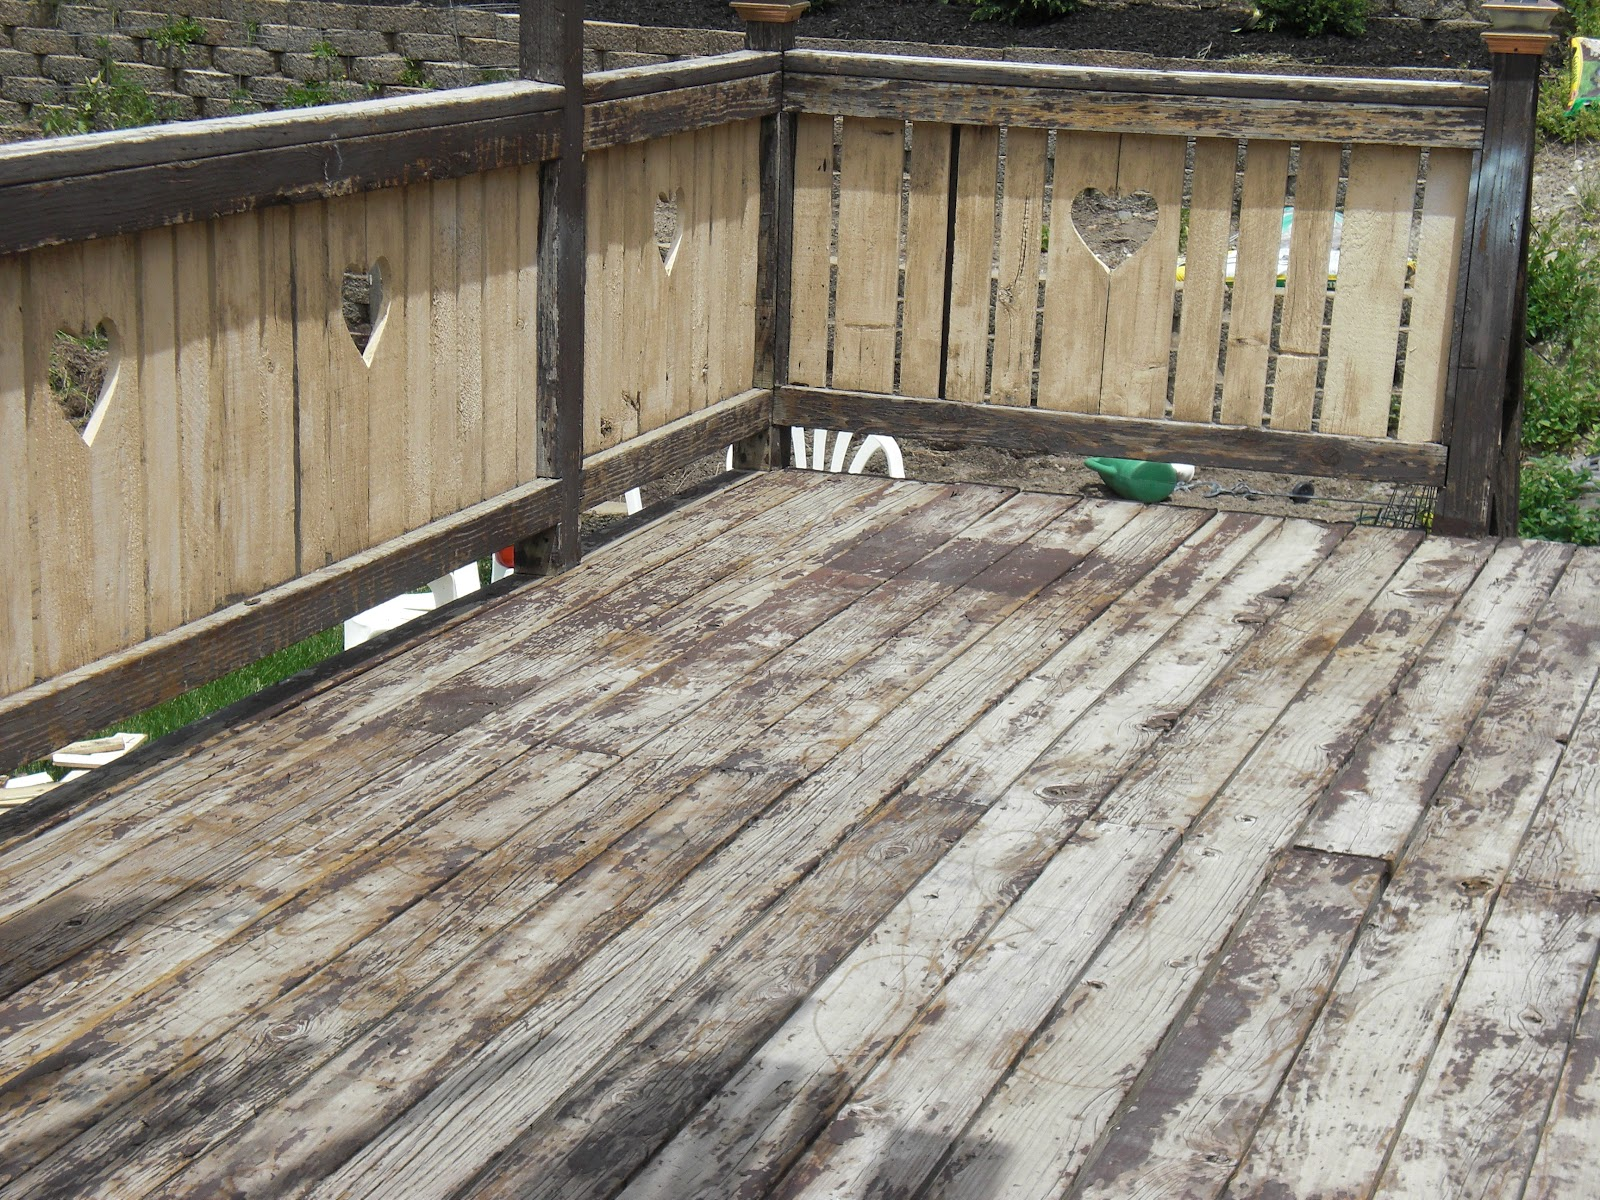 The awful Deck. This is the BEFORE DECK RESTORE picture.